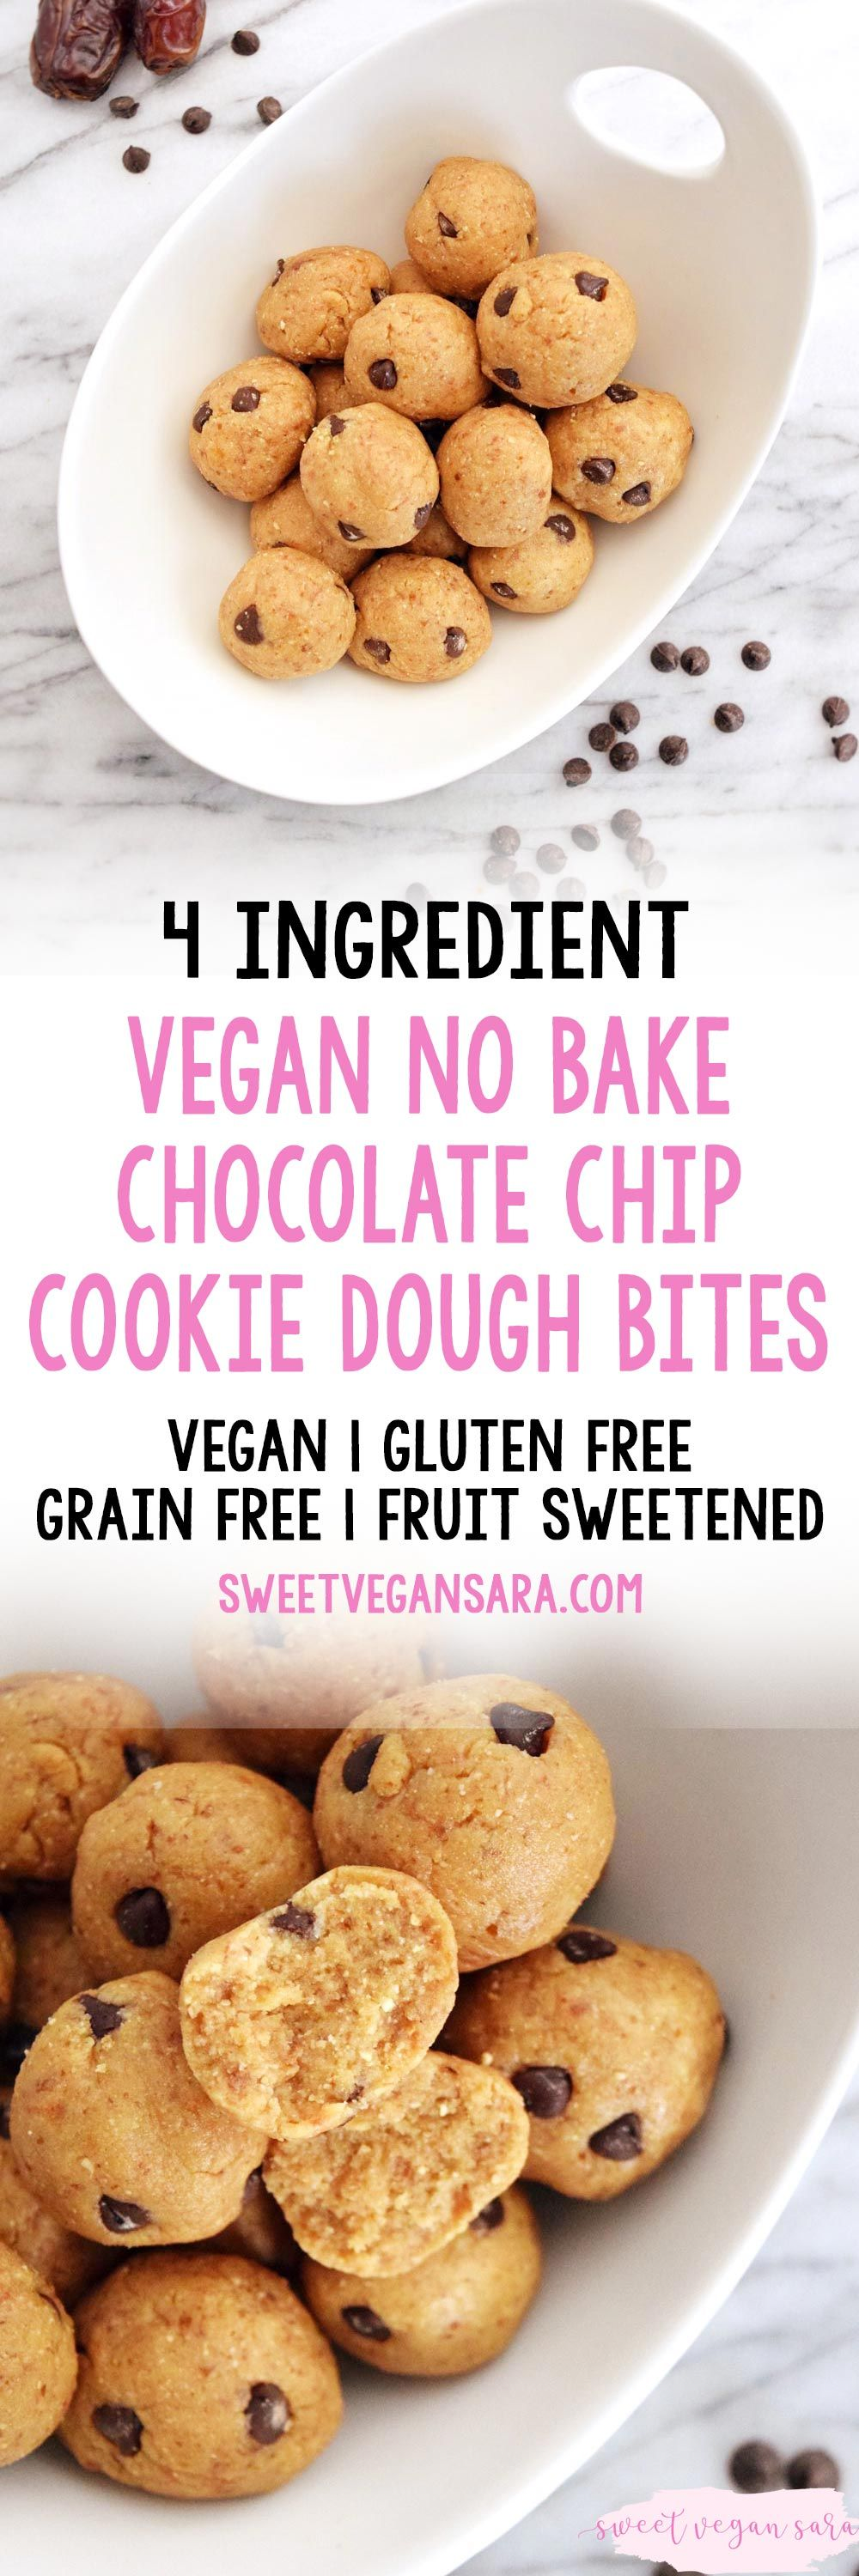 Vegan no bake chocolate chip cookie dough bites are soft, sweet